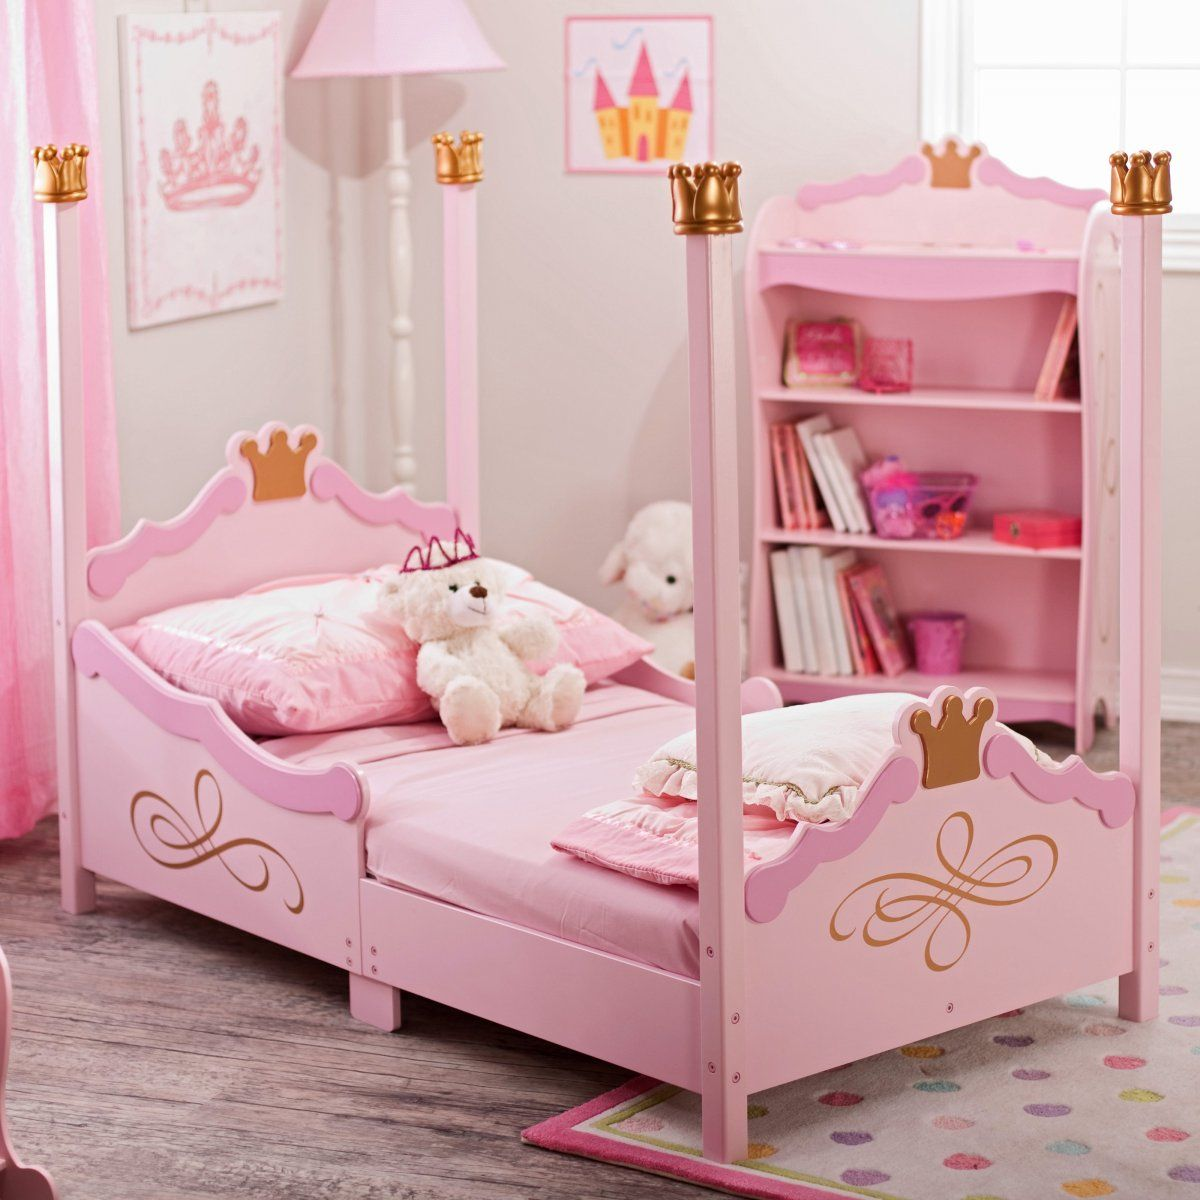 pink and gold bedroom decoration - buscar con google | bedroom